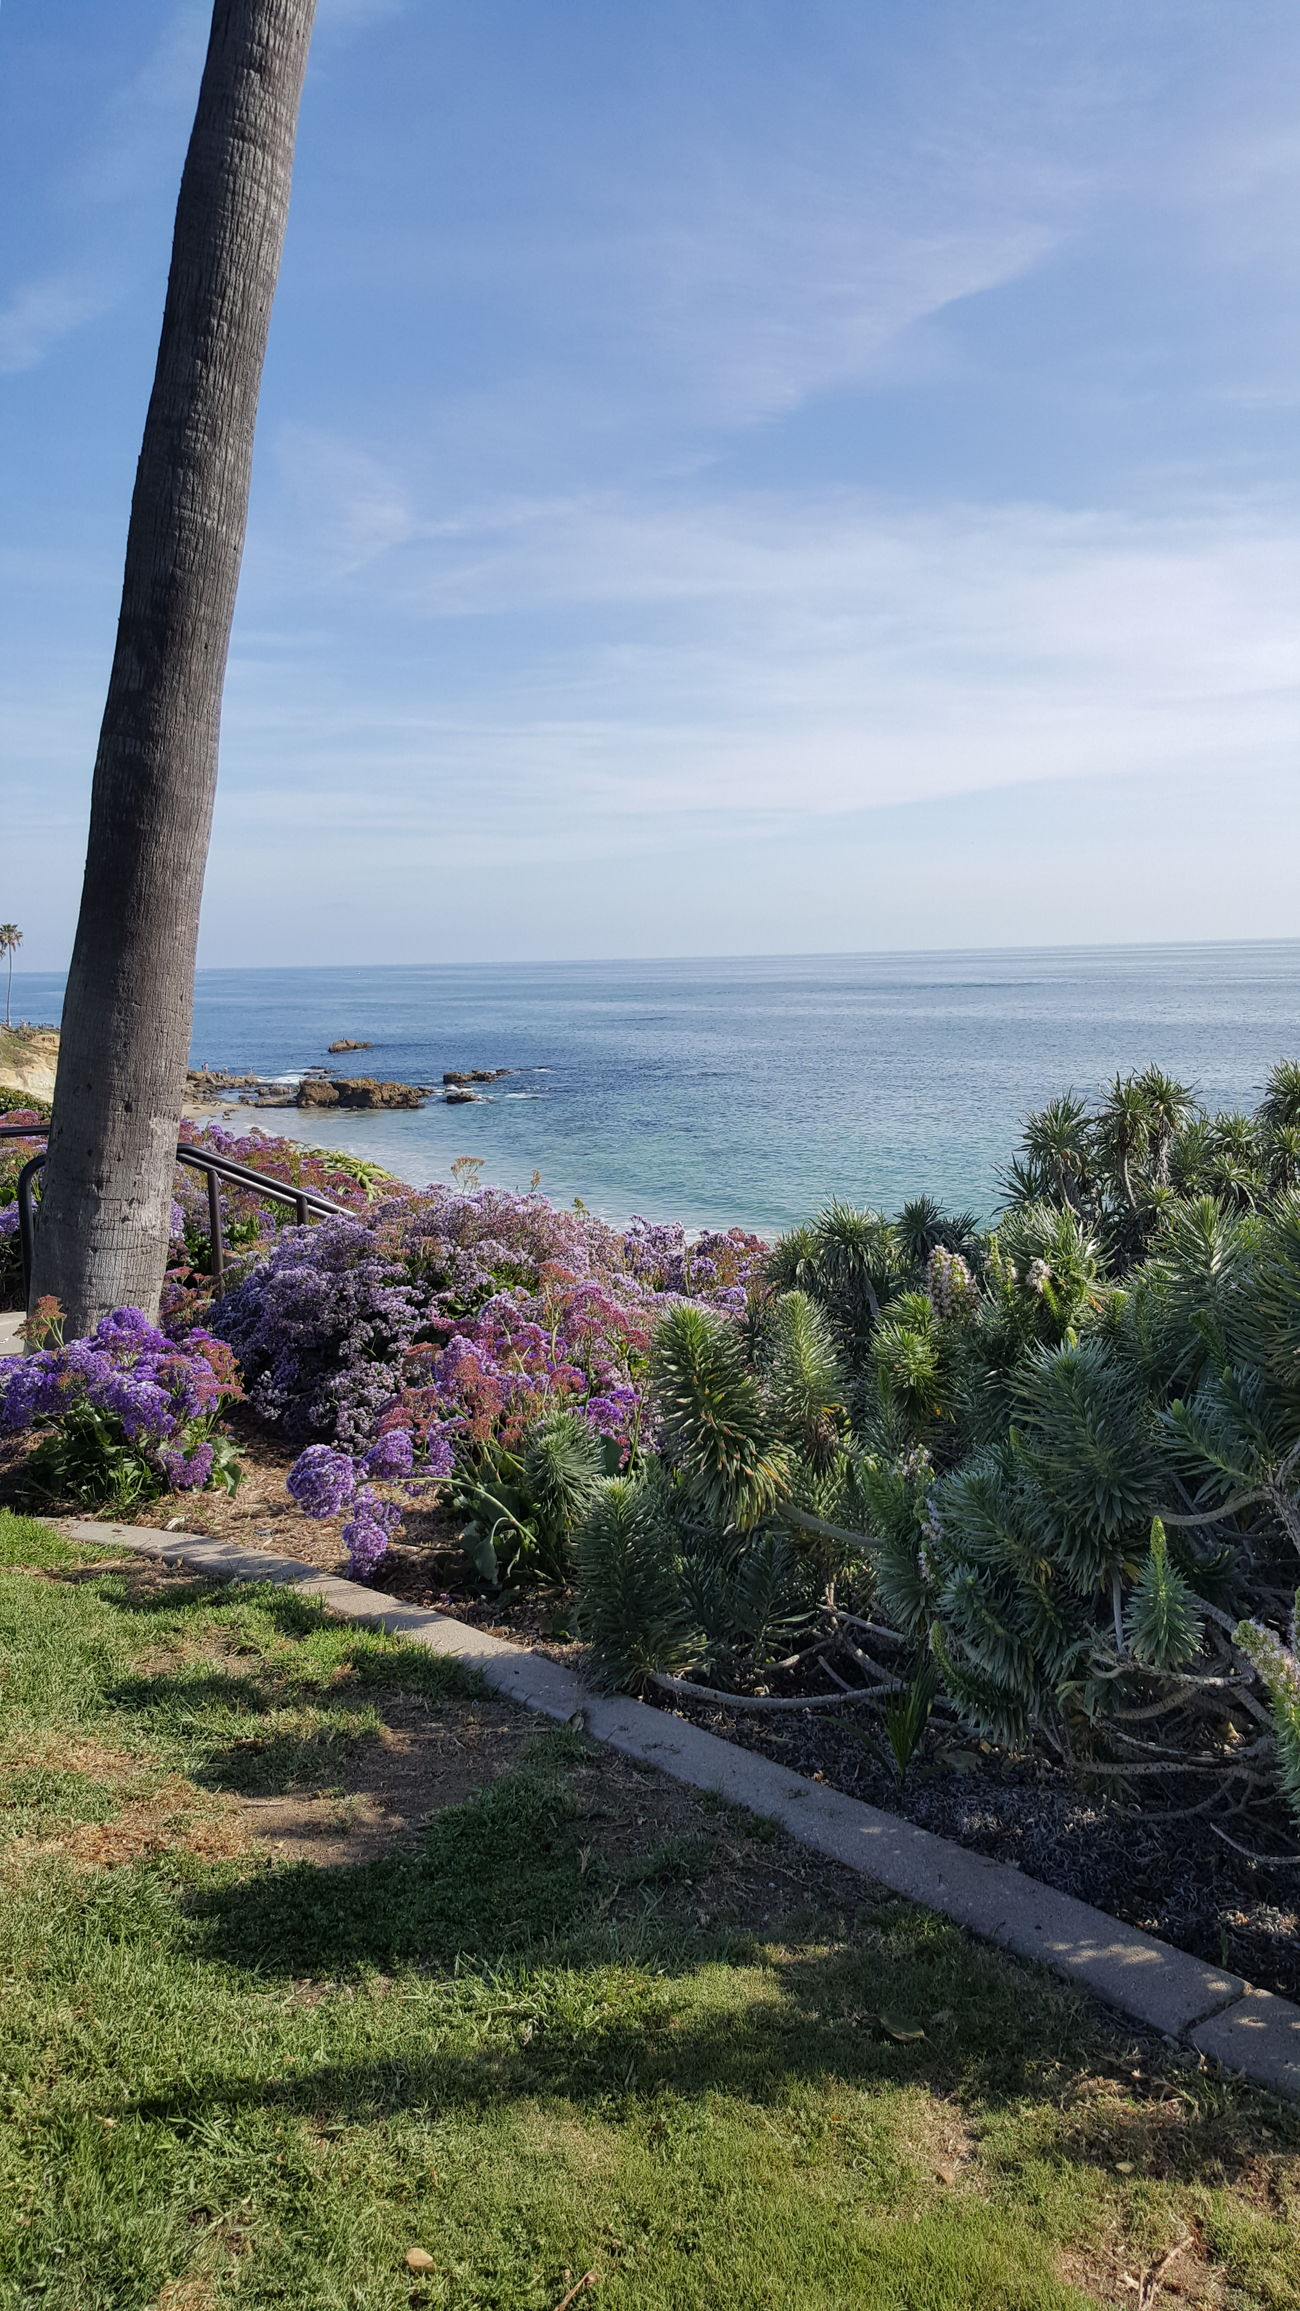 My most beautiful moment of the day in Heisler Park at Laguna Beach. Heislerpark Laguna Beach Beautiful Nature Beautiful Moments Tranquility March 19